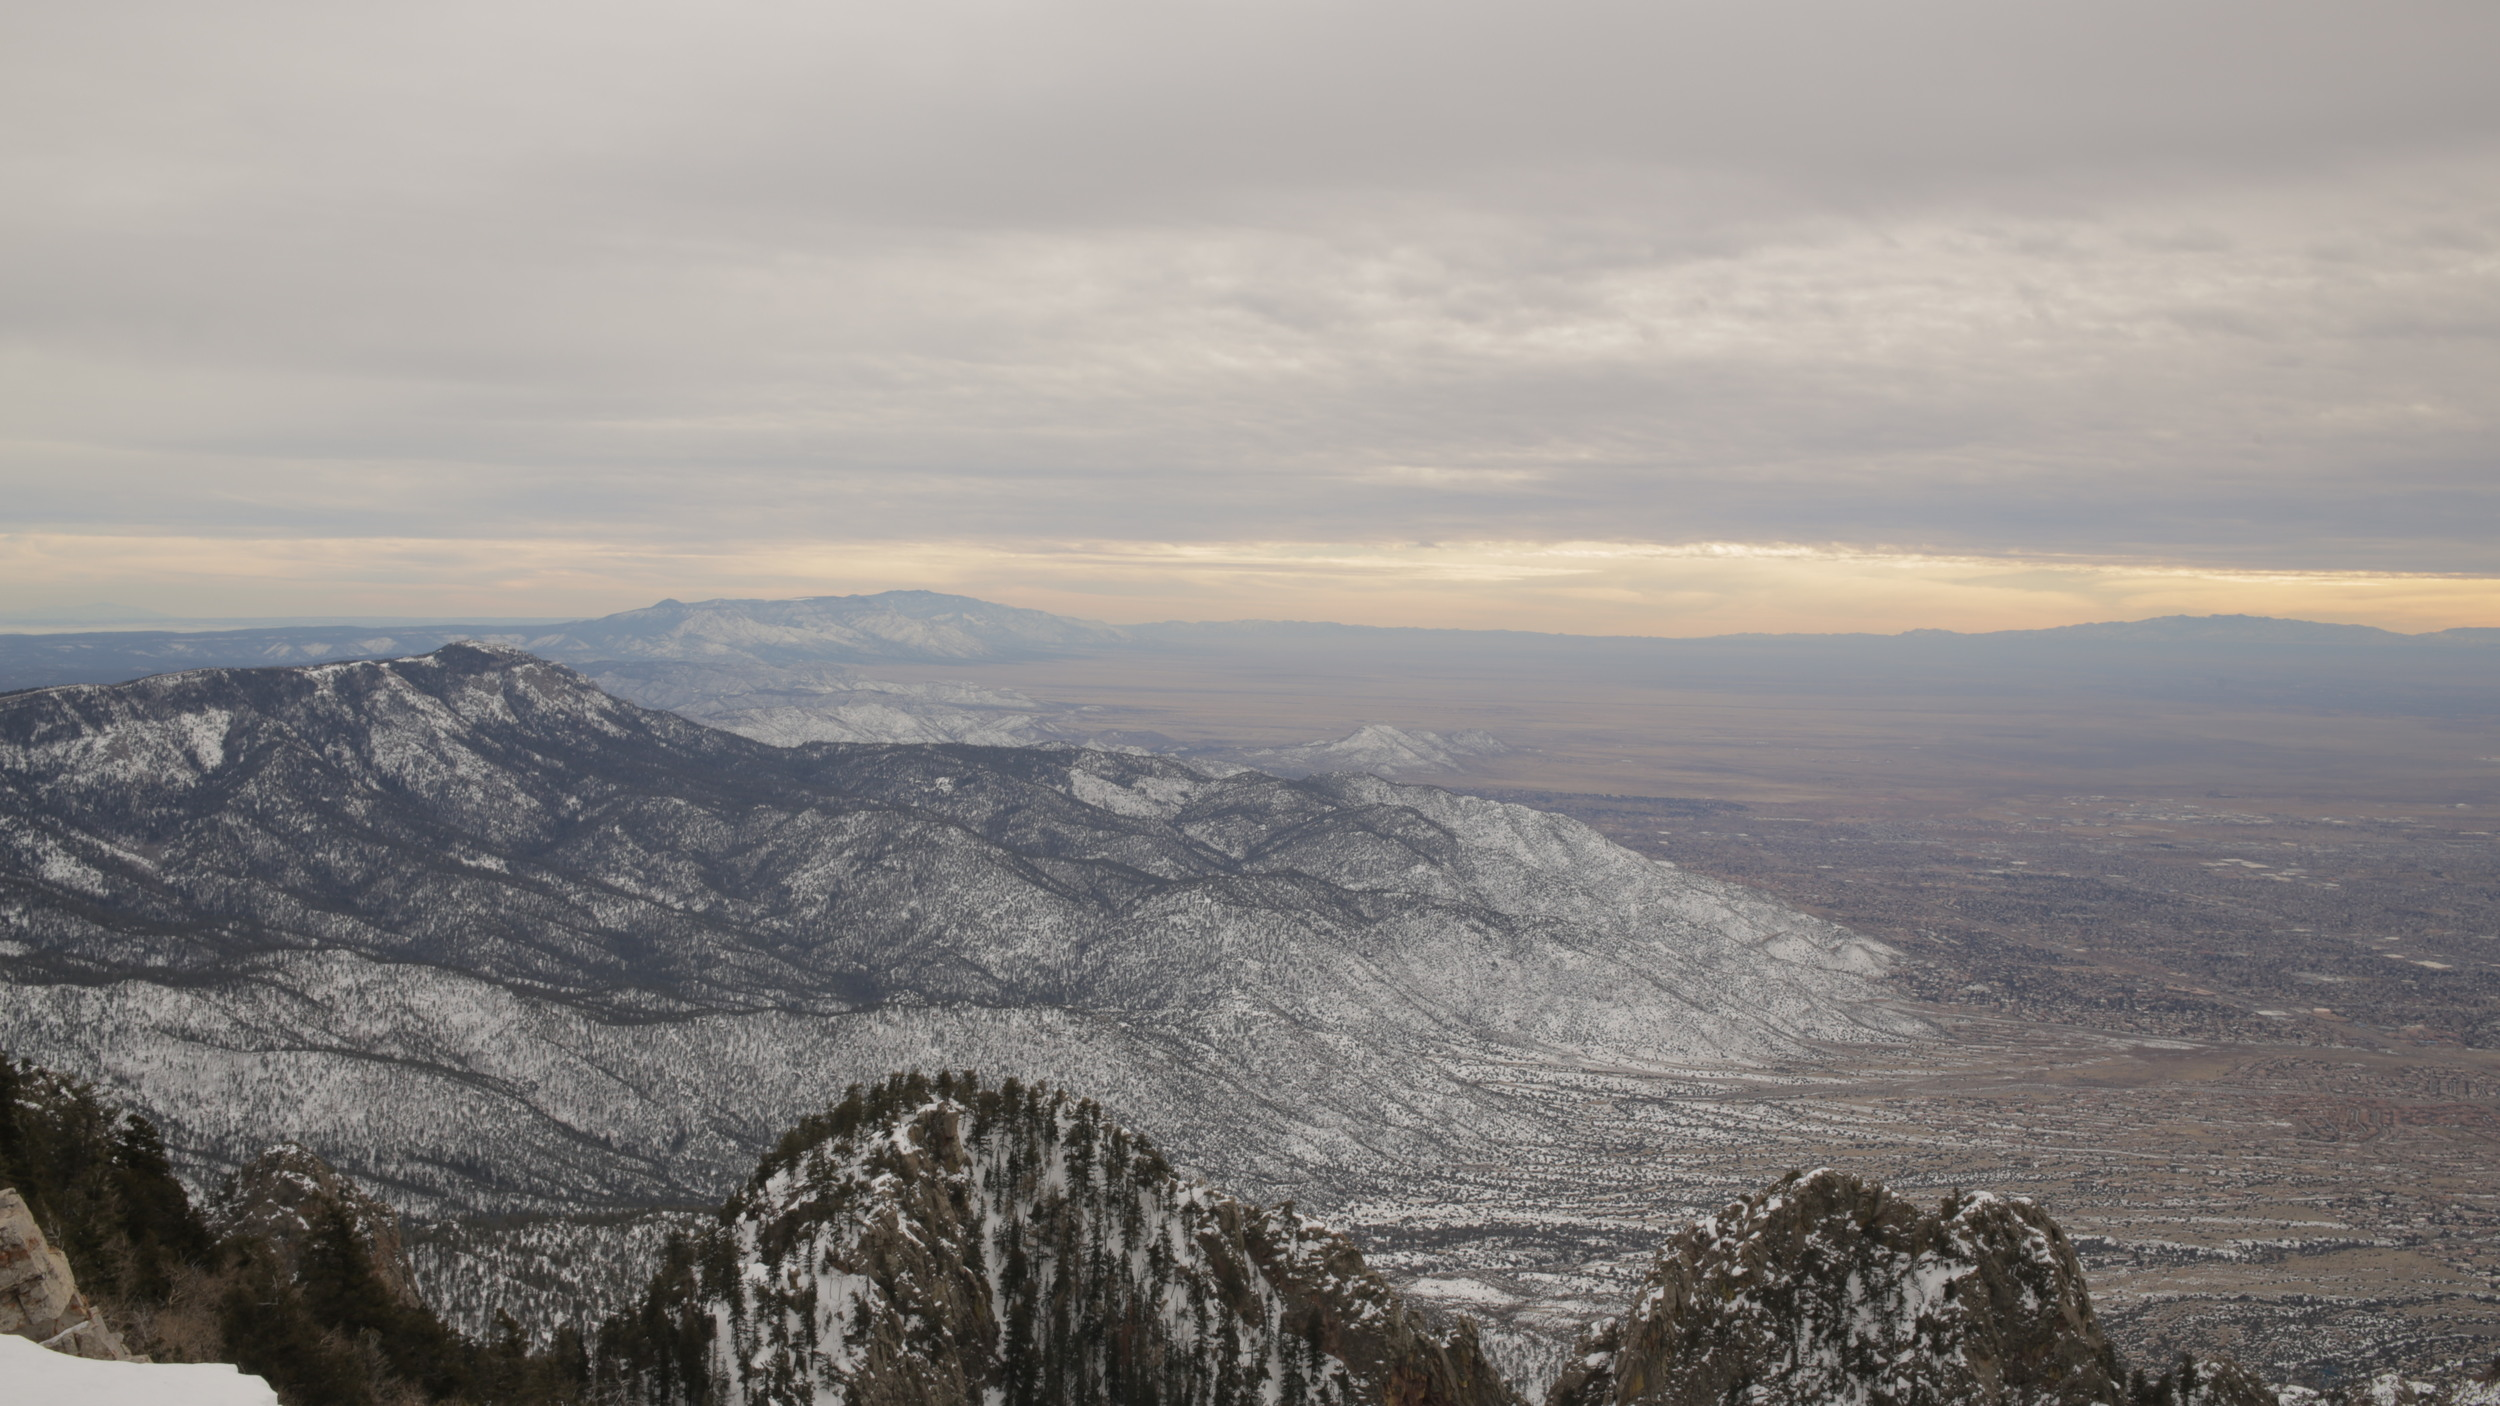 Sandia Mountains - Albuquerque, New Mexico